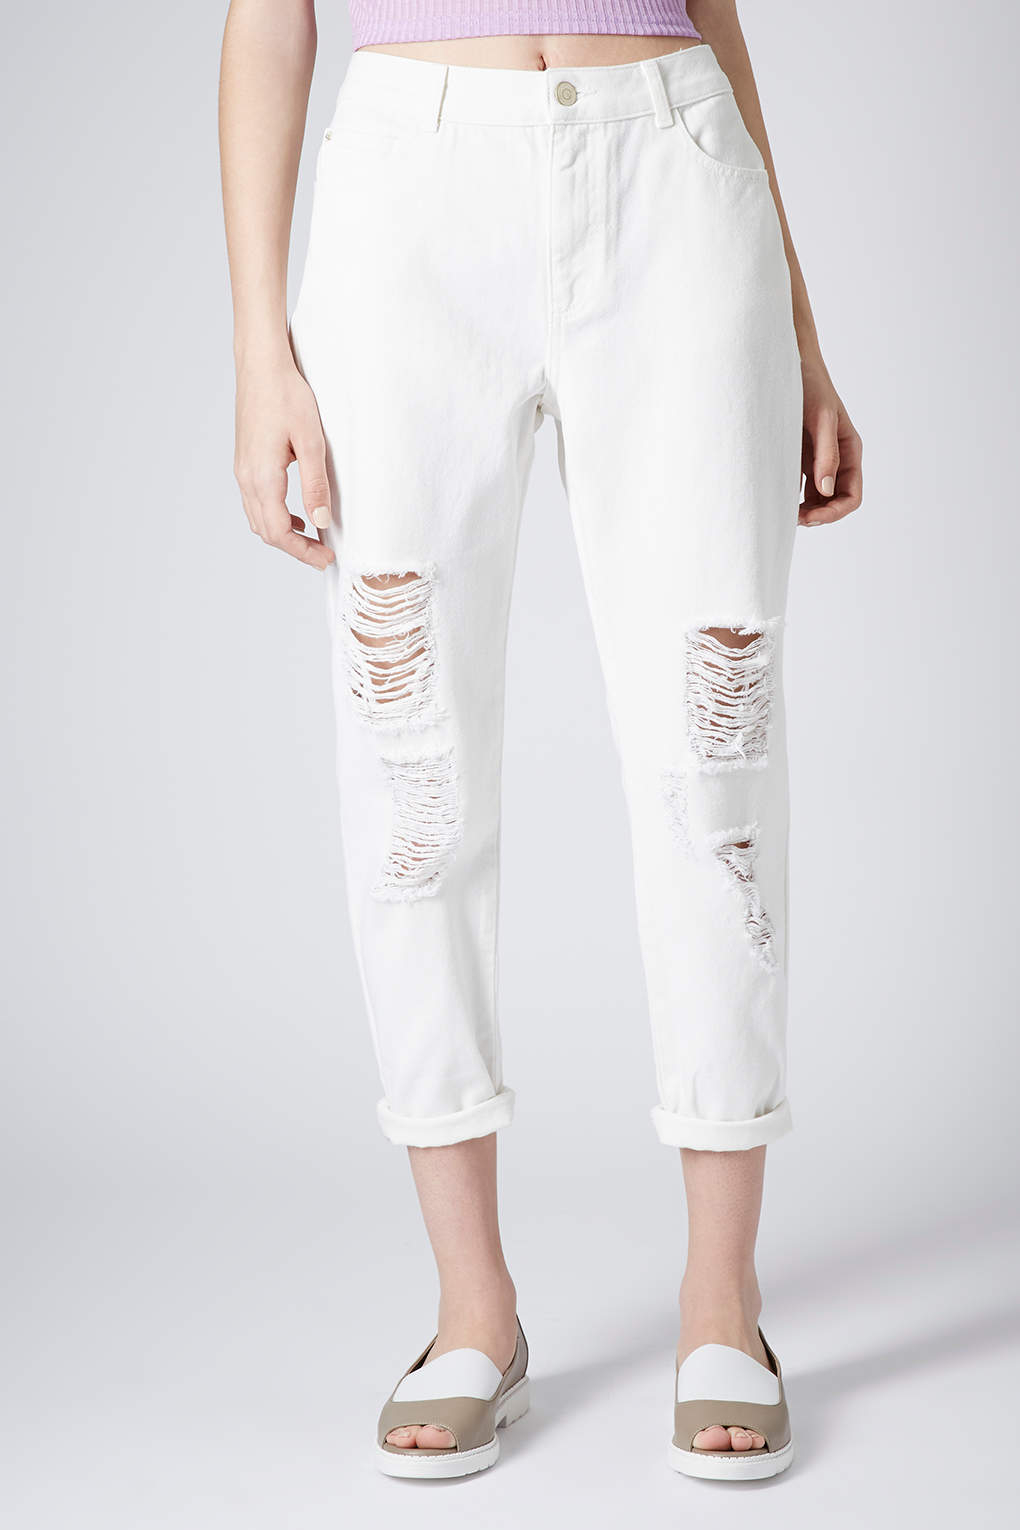 Topshop Petite Moto White Ripped Mom Jeans in White | Lyst